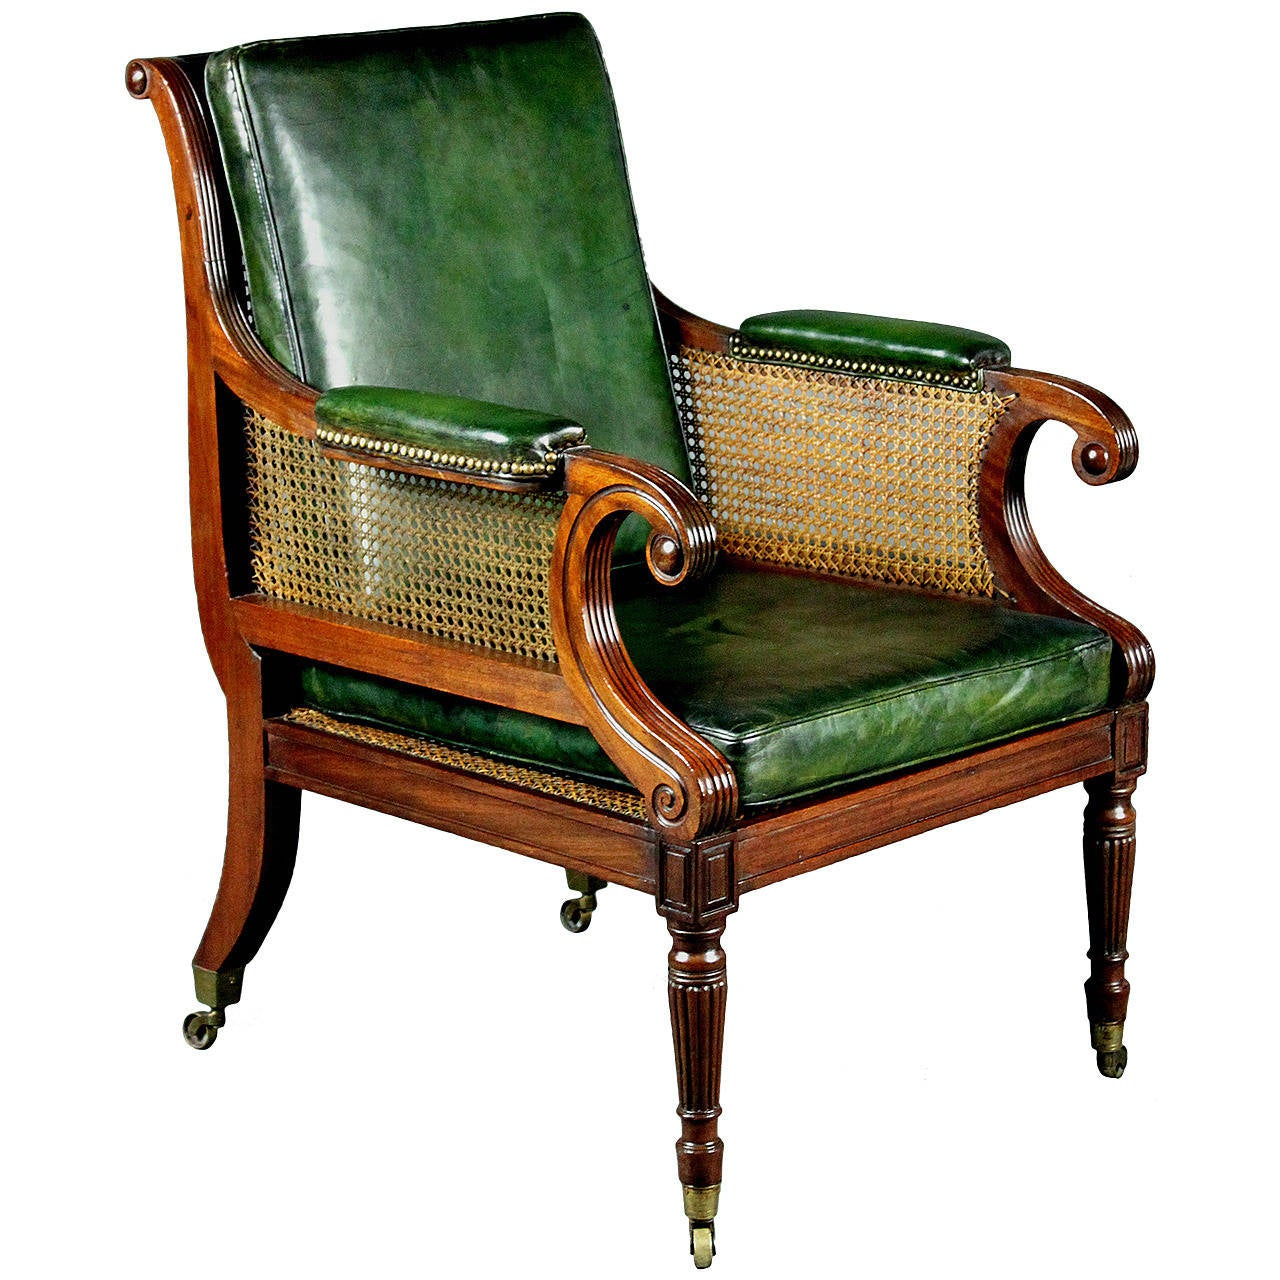 bergere chairs for sale do it yourself patio chair cushions regency at 1stdibs